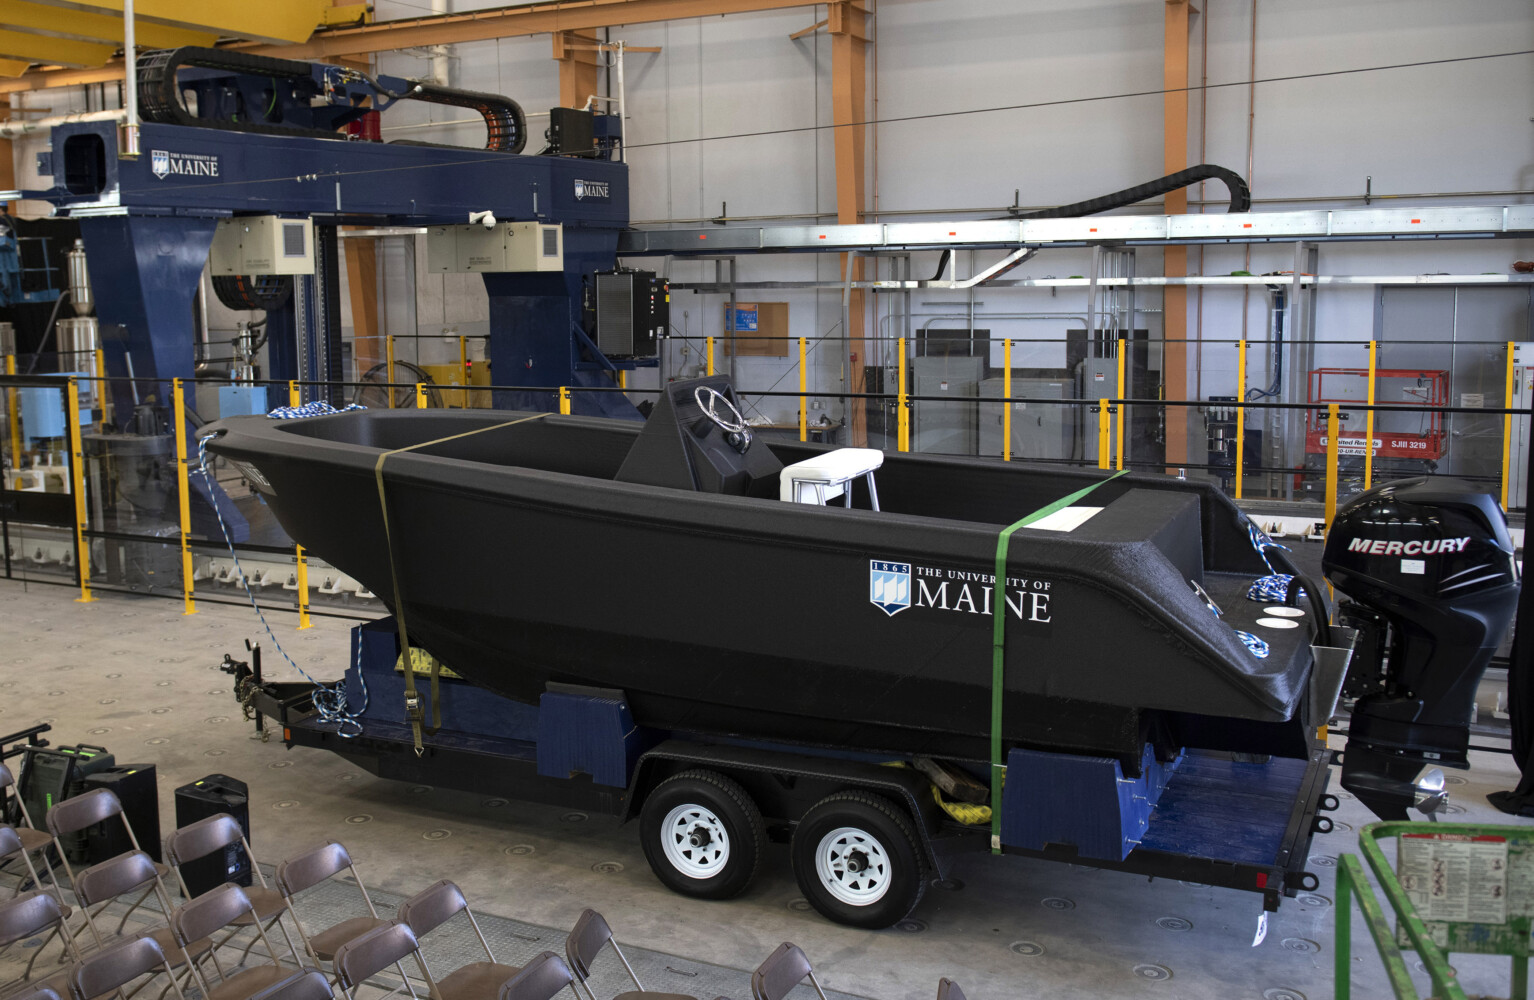 UMaine just made the world's largest 3-D printed object: a boat - CentralMaine.com